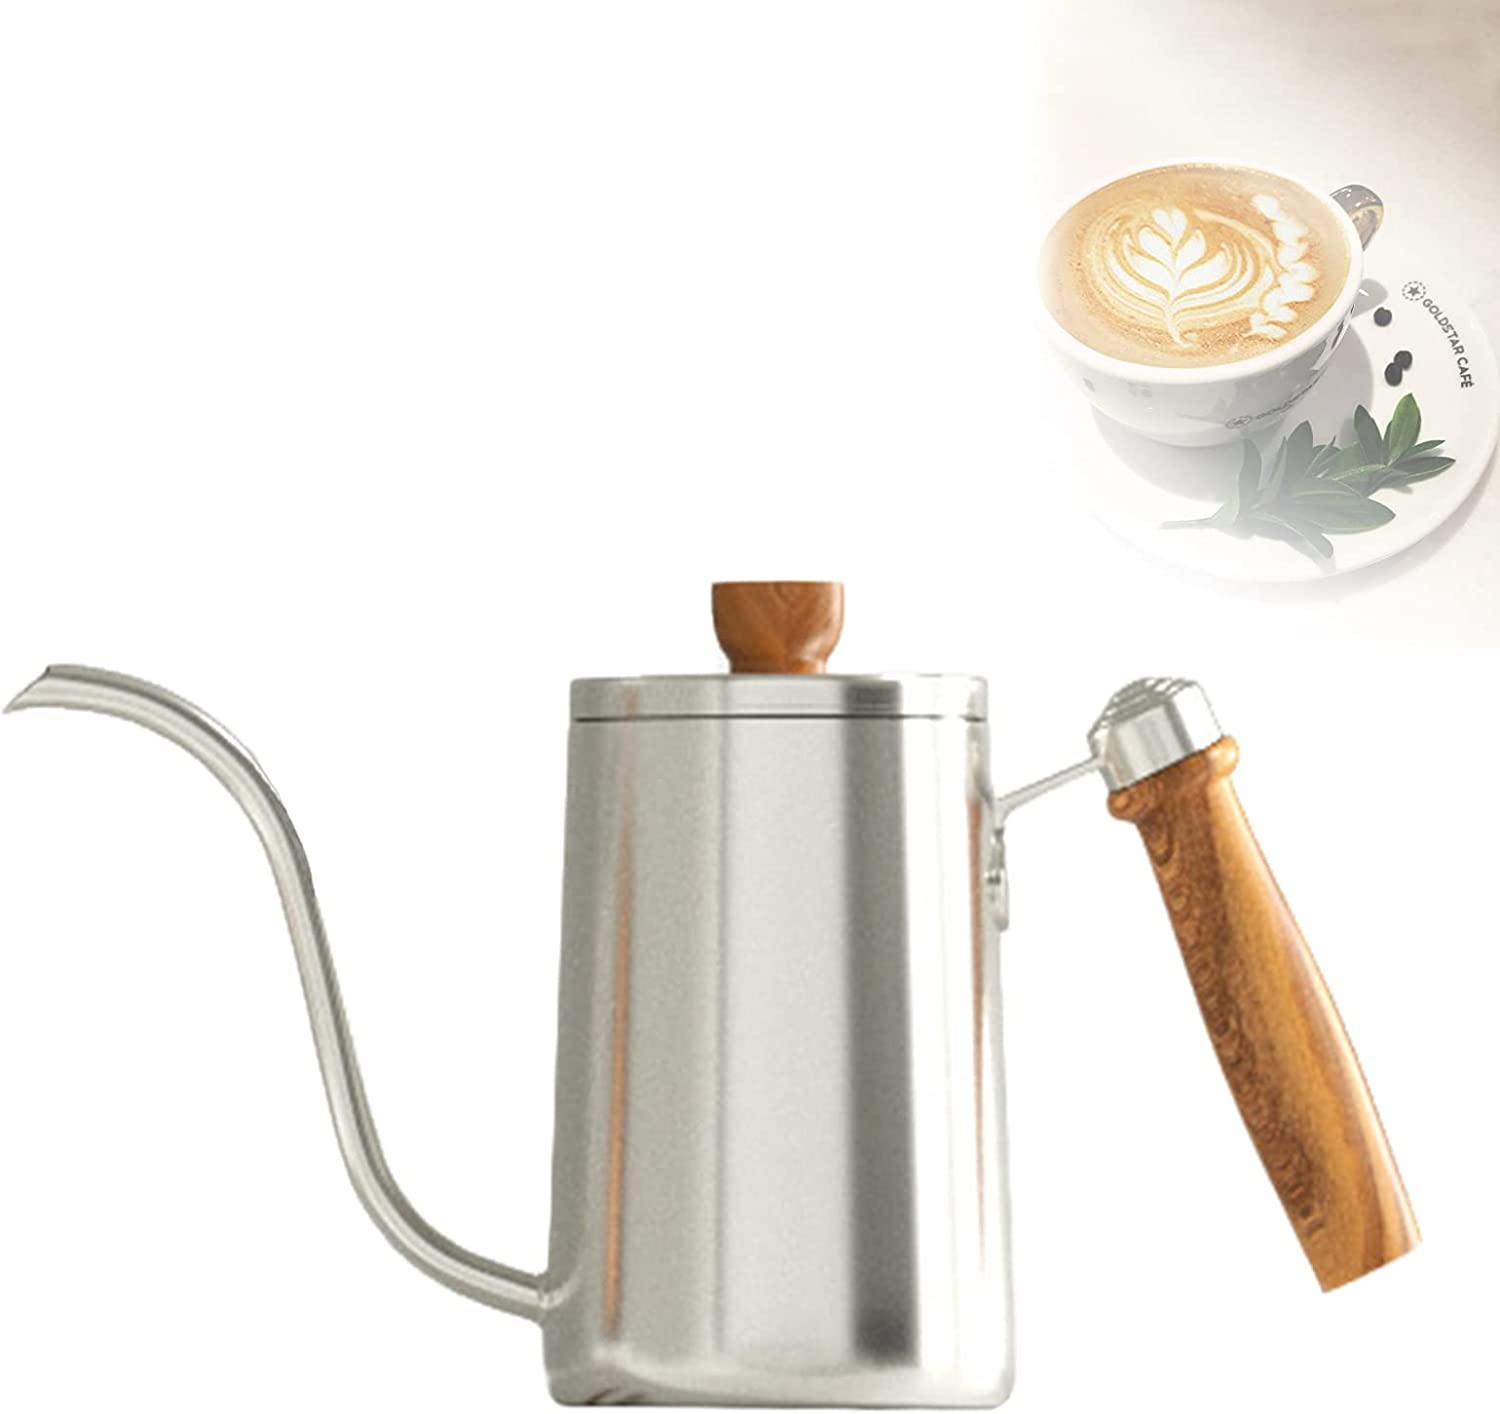 YHWD Hand Drip Coffee Brewer Pot 40% OFF Cheap Los Angeles Mall Sale Stainless Steel Tea Make